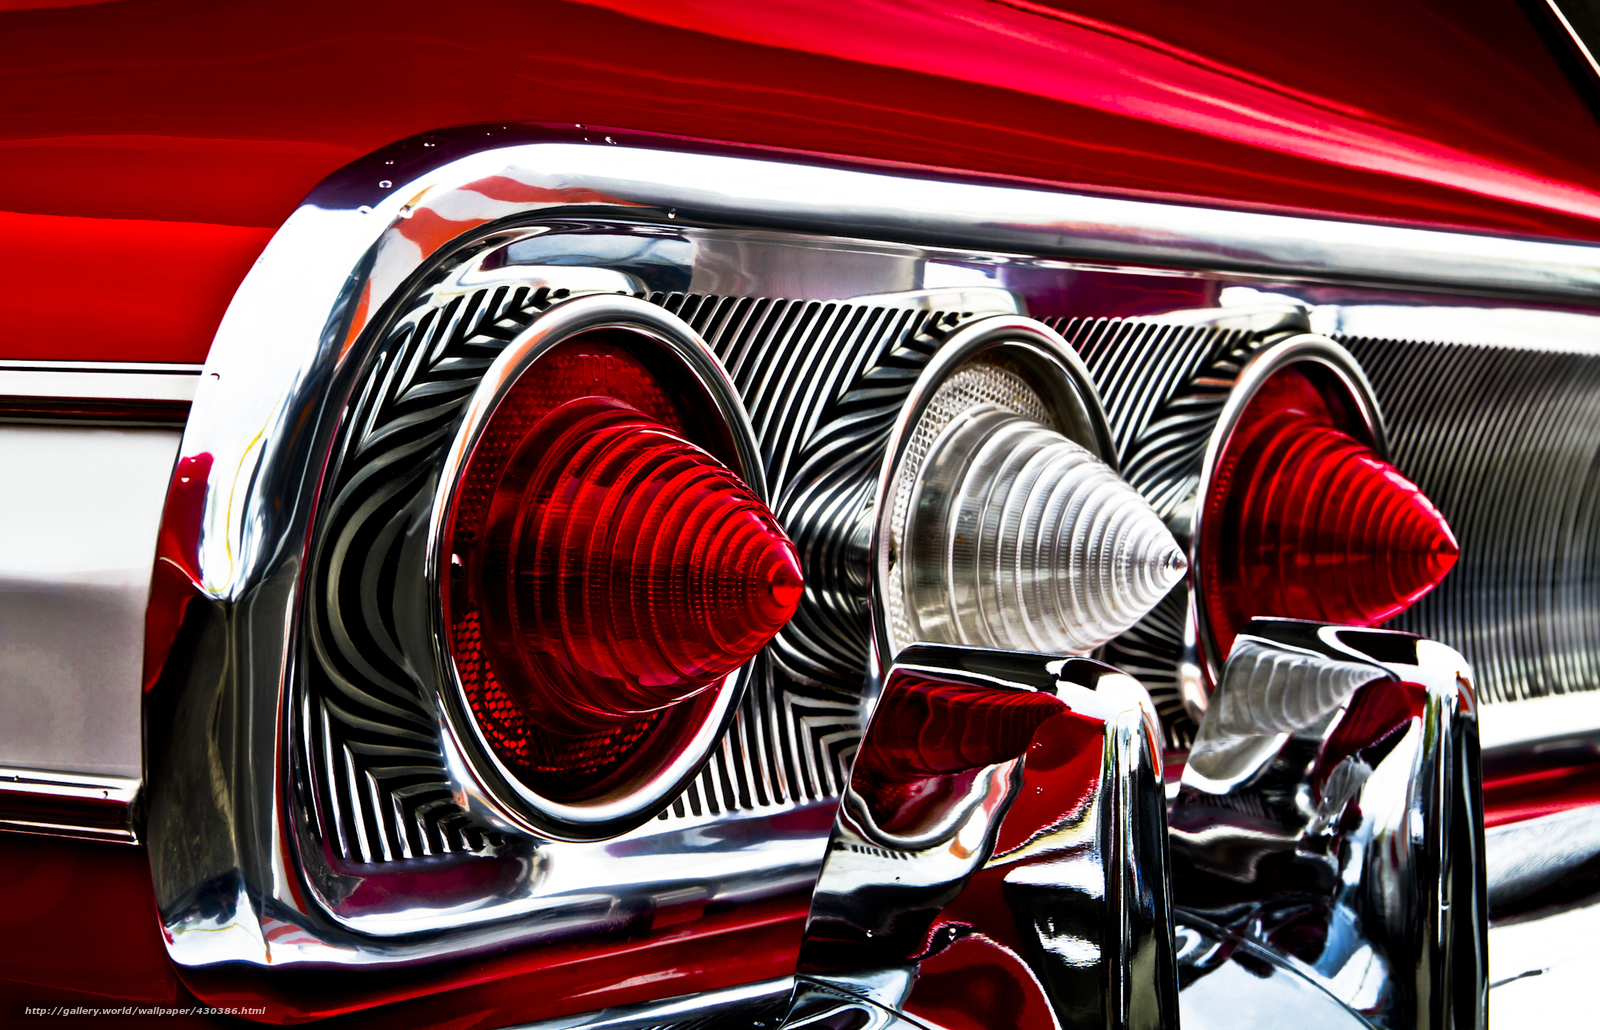 Download wallpaper Chevrolet,  Impala,  red,  lights free desktop wallpaper in the resolution 2000x1288 — picture №430386